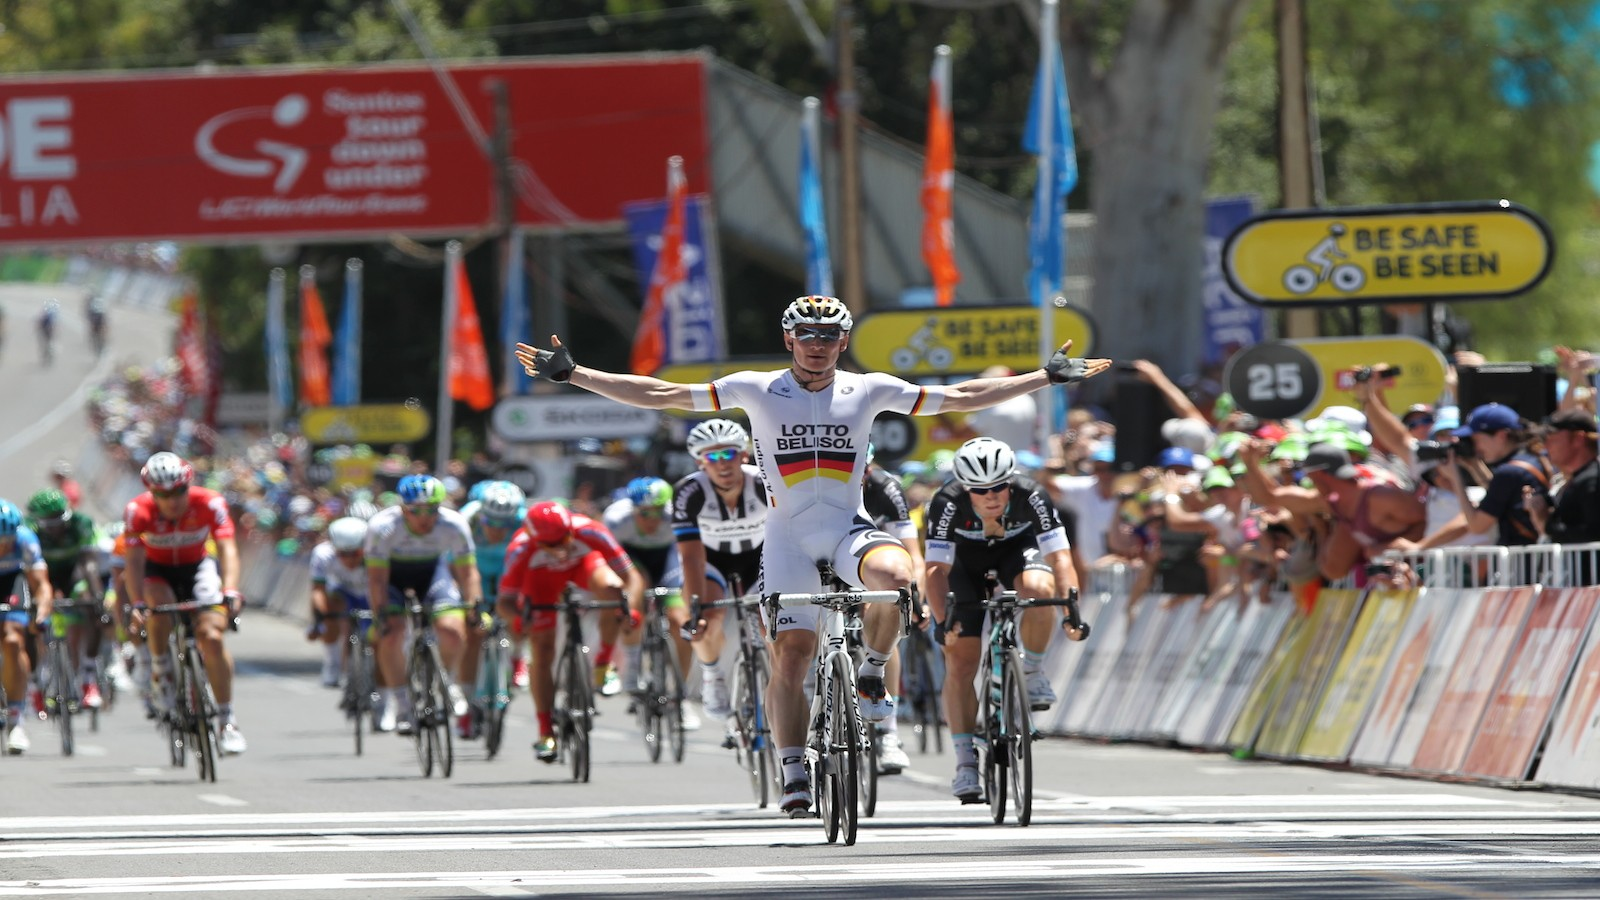 The Santos Tour Down Under will continue as a WorldTour event for atleast another two years